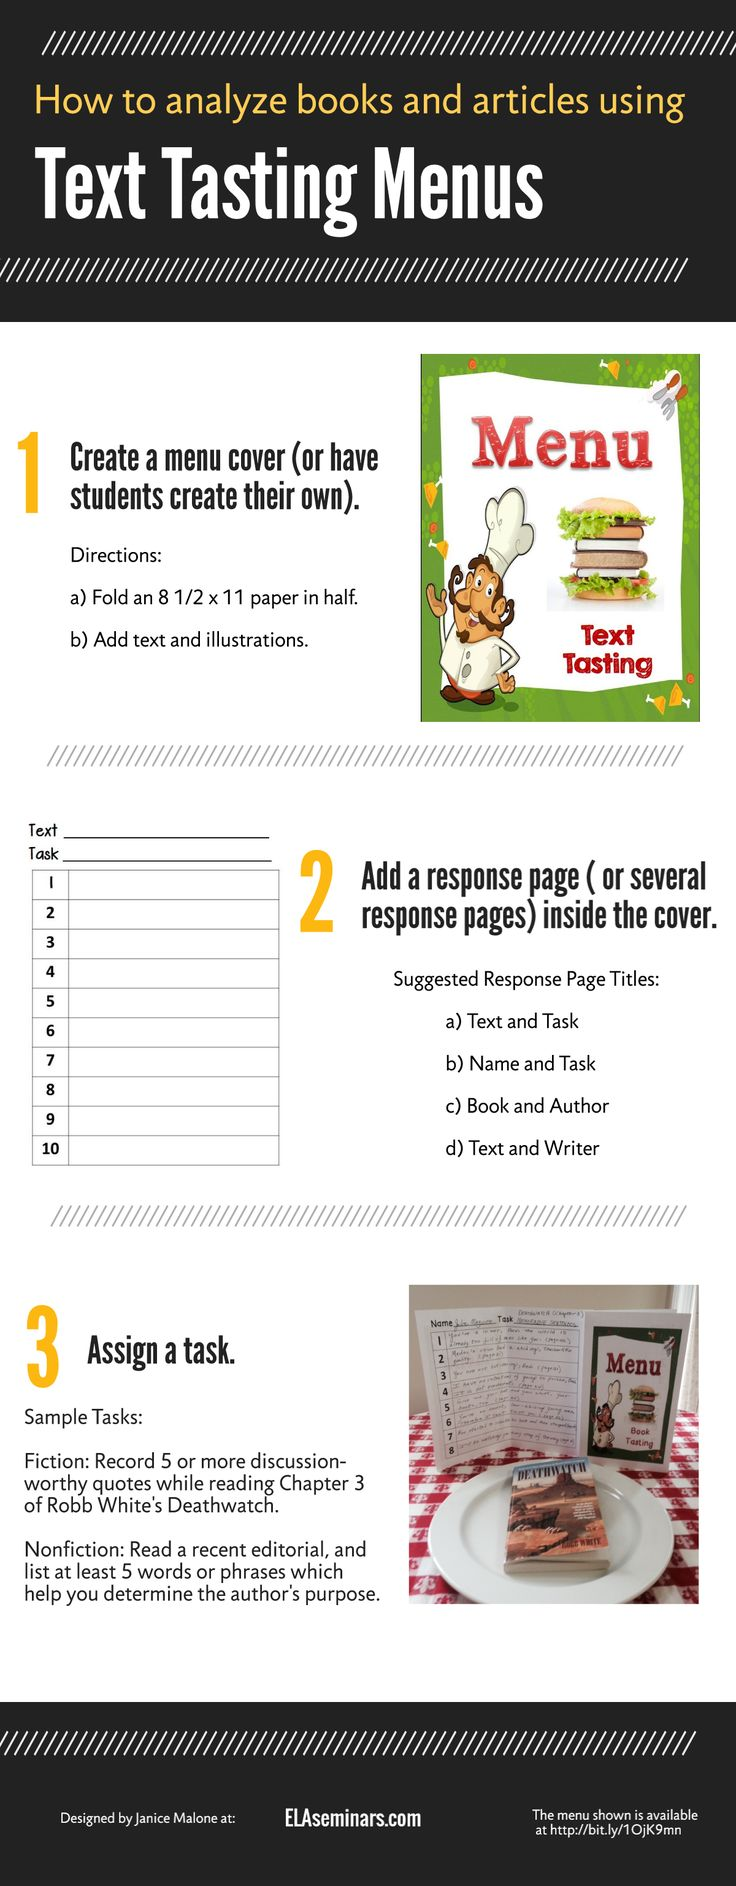 How to Analyze Books and Articles with Book Tasting and Text Tasting Menus (The menu shown is available on TpT.) - Find more tips at http://pinterest.com/elaseminars/  or have lessons delivered to your inbox at http://elaseminars.com/opt-in-1.htm